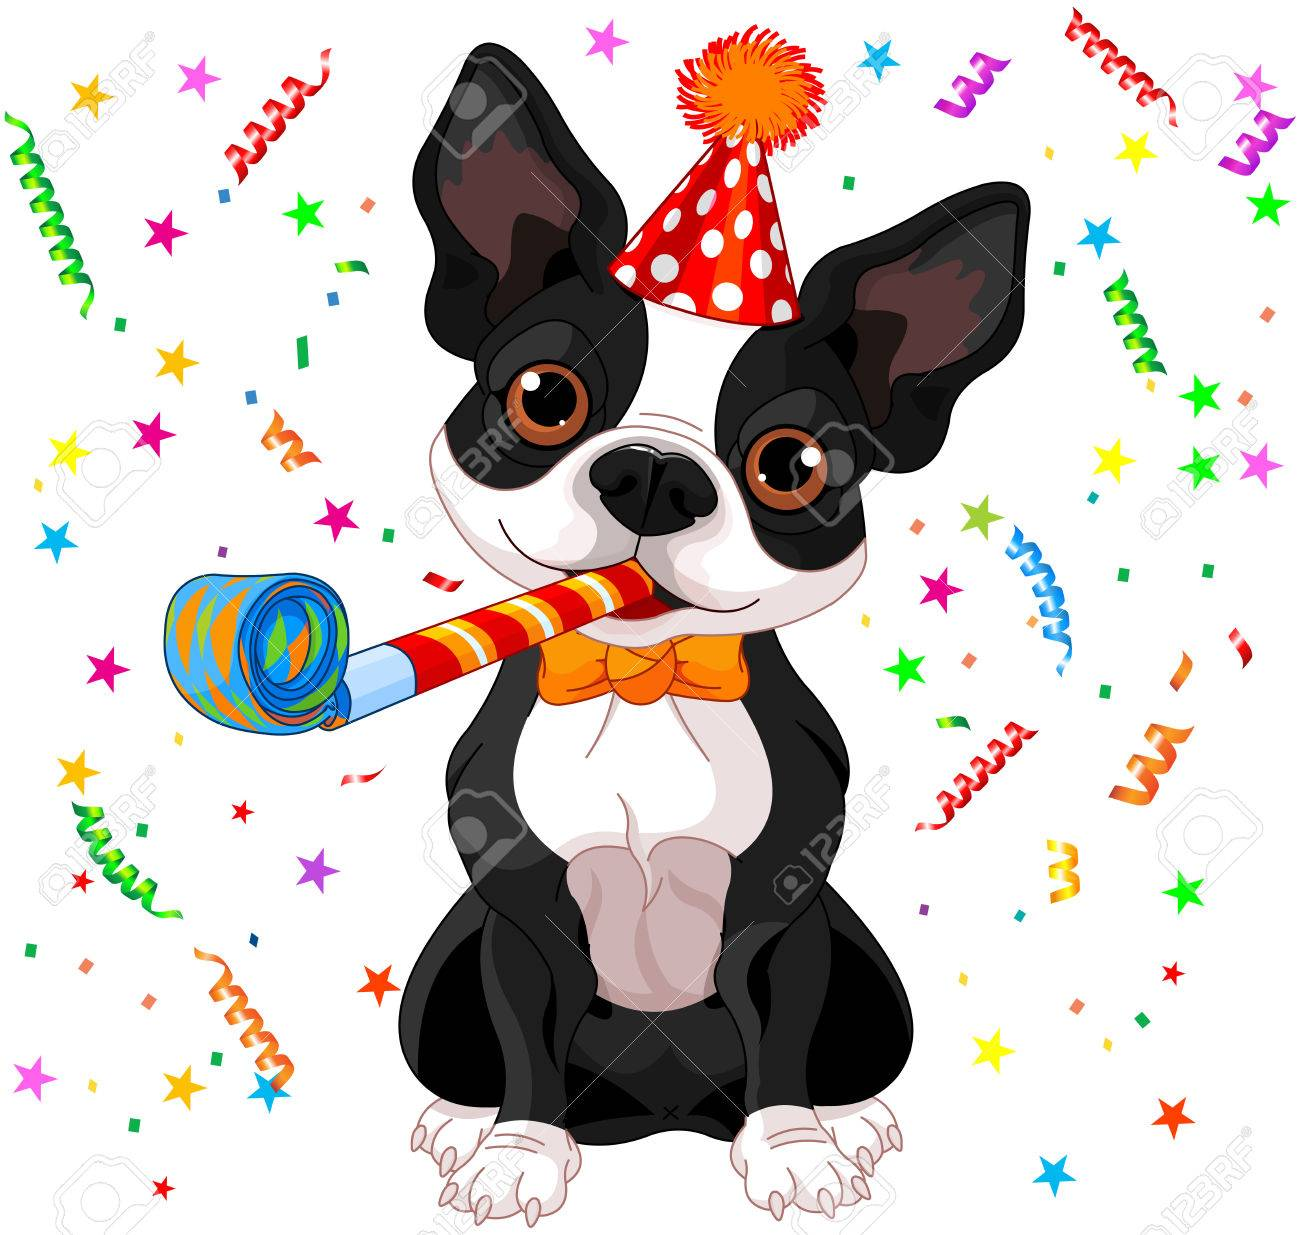 Walking Challenge 2012: 365 km en 365 jours  35588778-illustration-of-cute-boston-terrier-celebrating